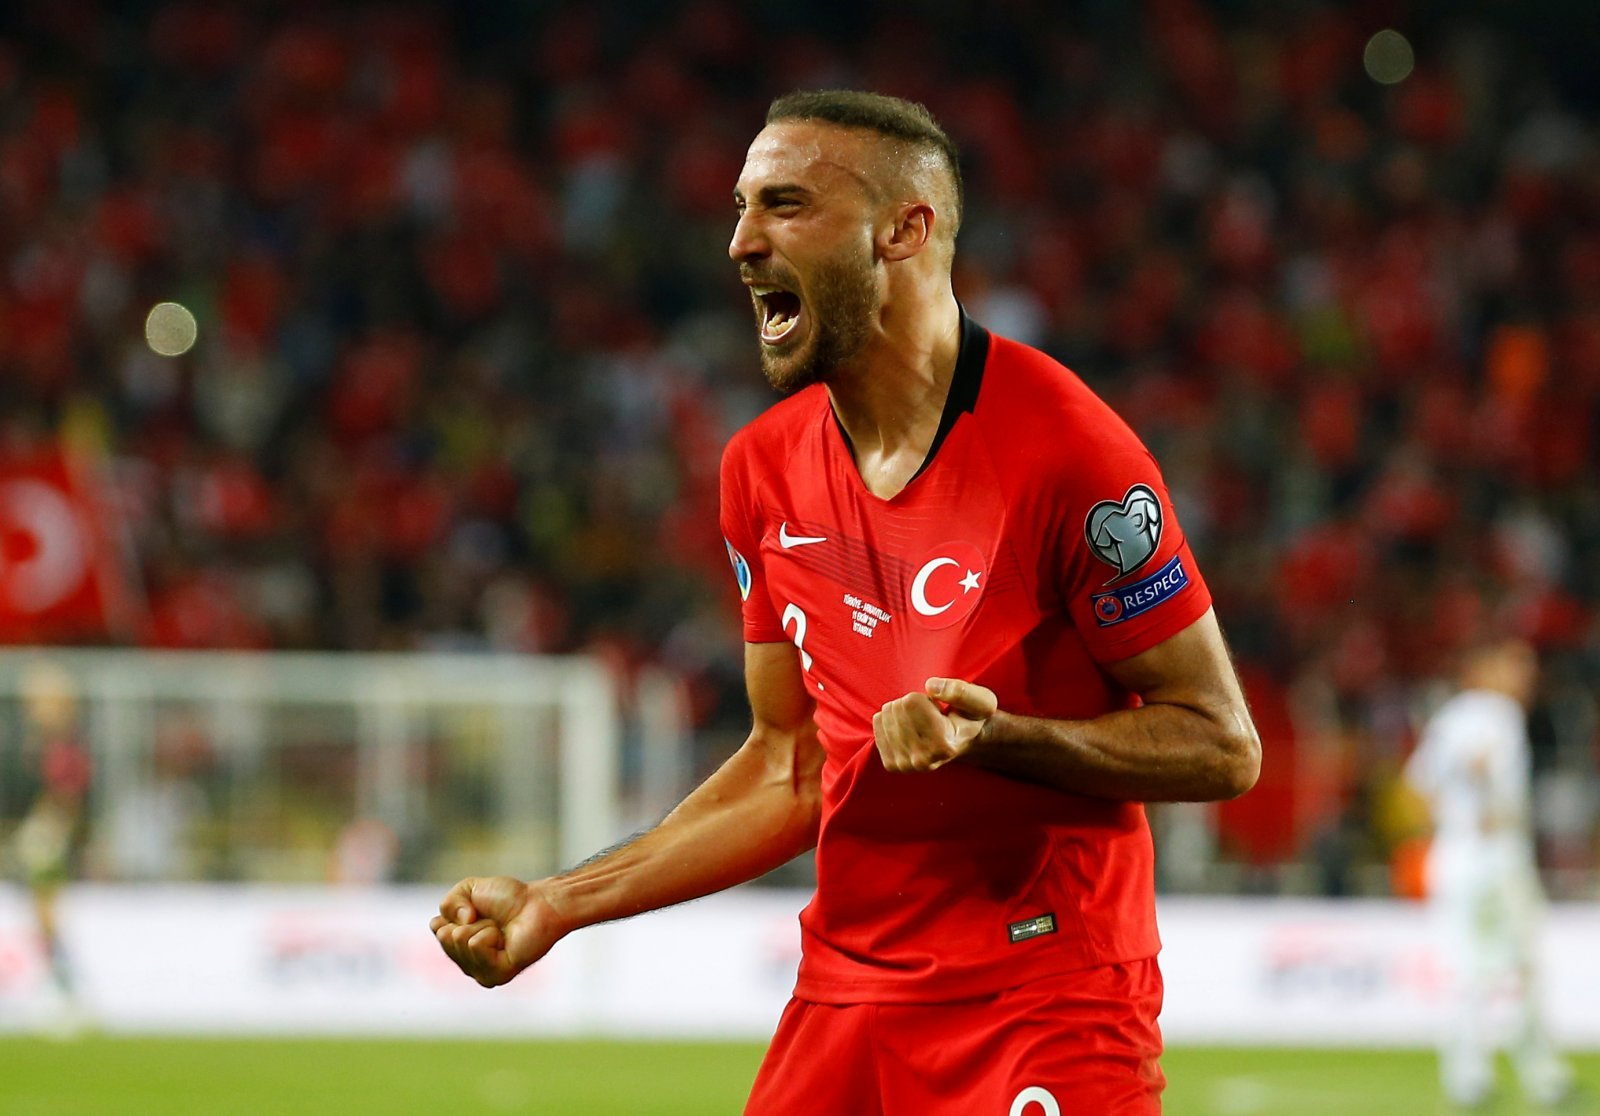 Everton: Fans call for Cenk Tosun to start after scoring winner for Turkey